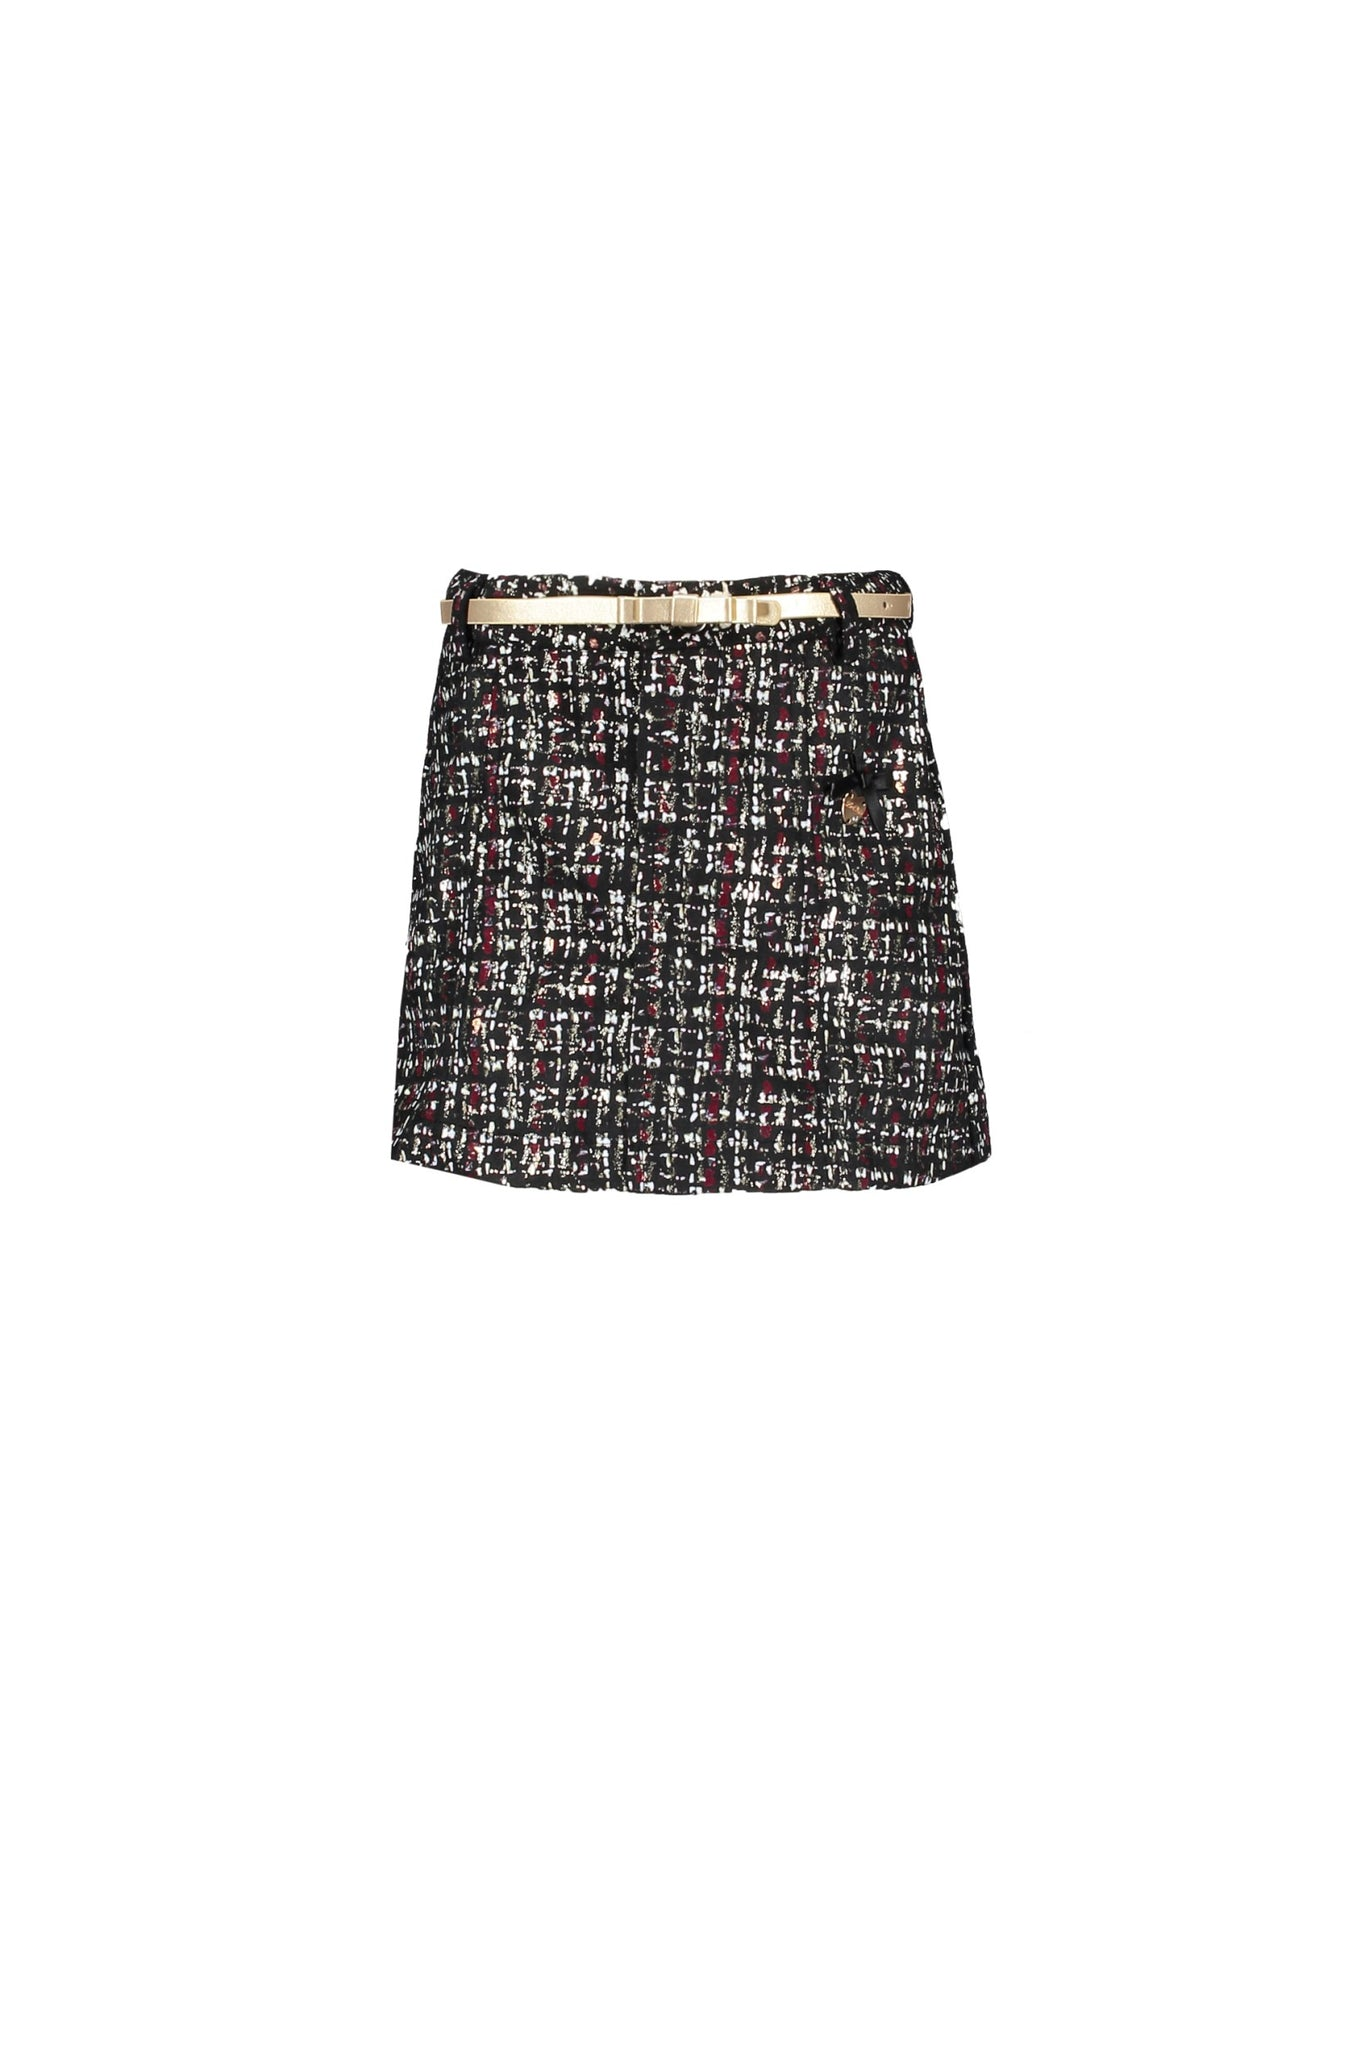 LE CHIC Tweed Skirt